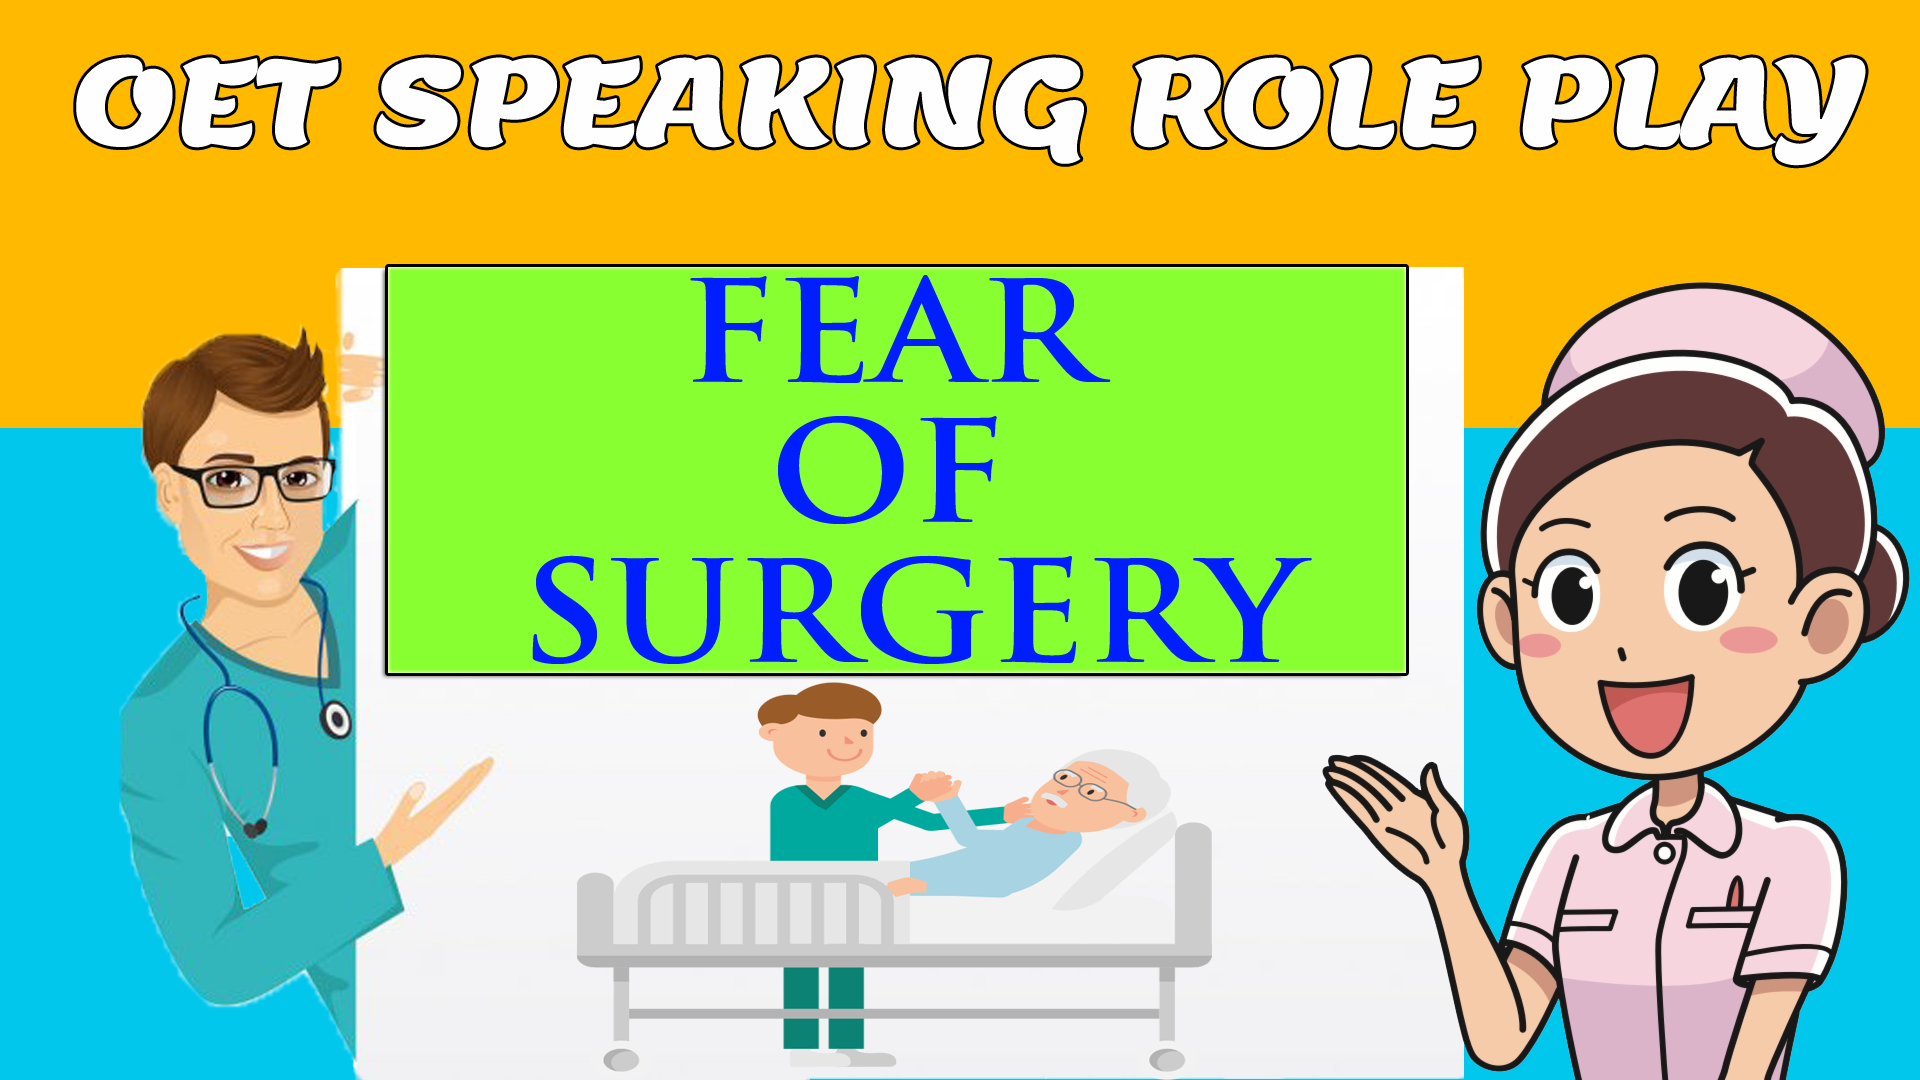 FEAR OF SURGERY OET SPEAKING ROLE PLAY BY MIHIRAA